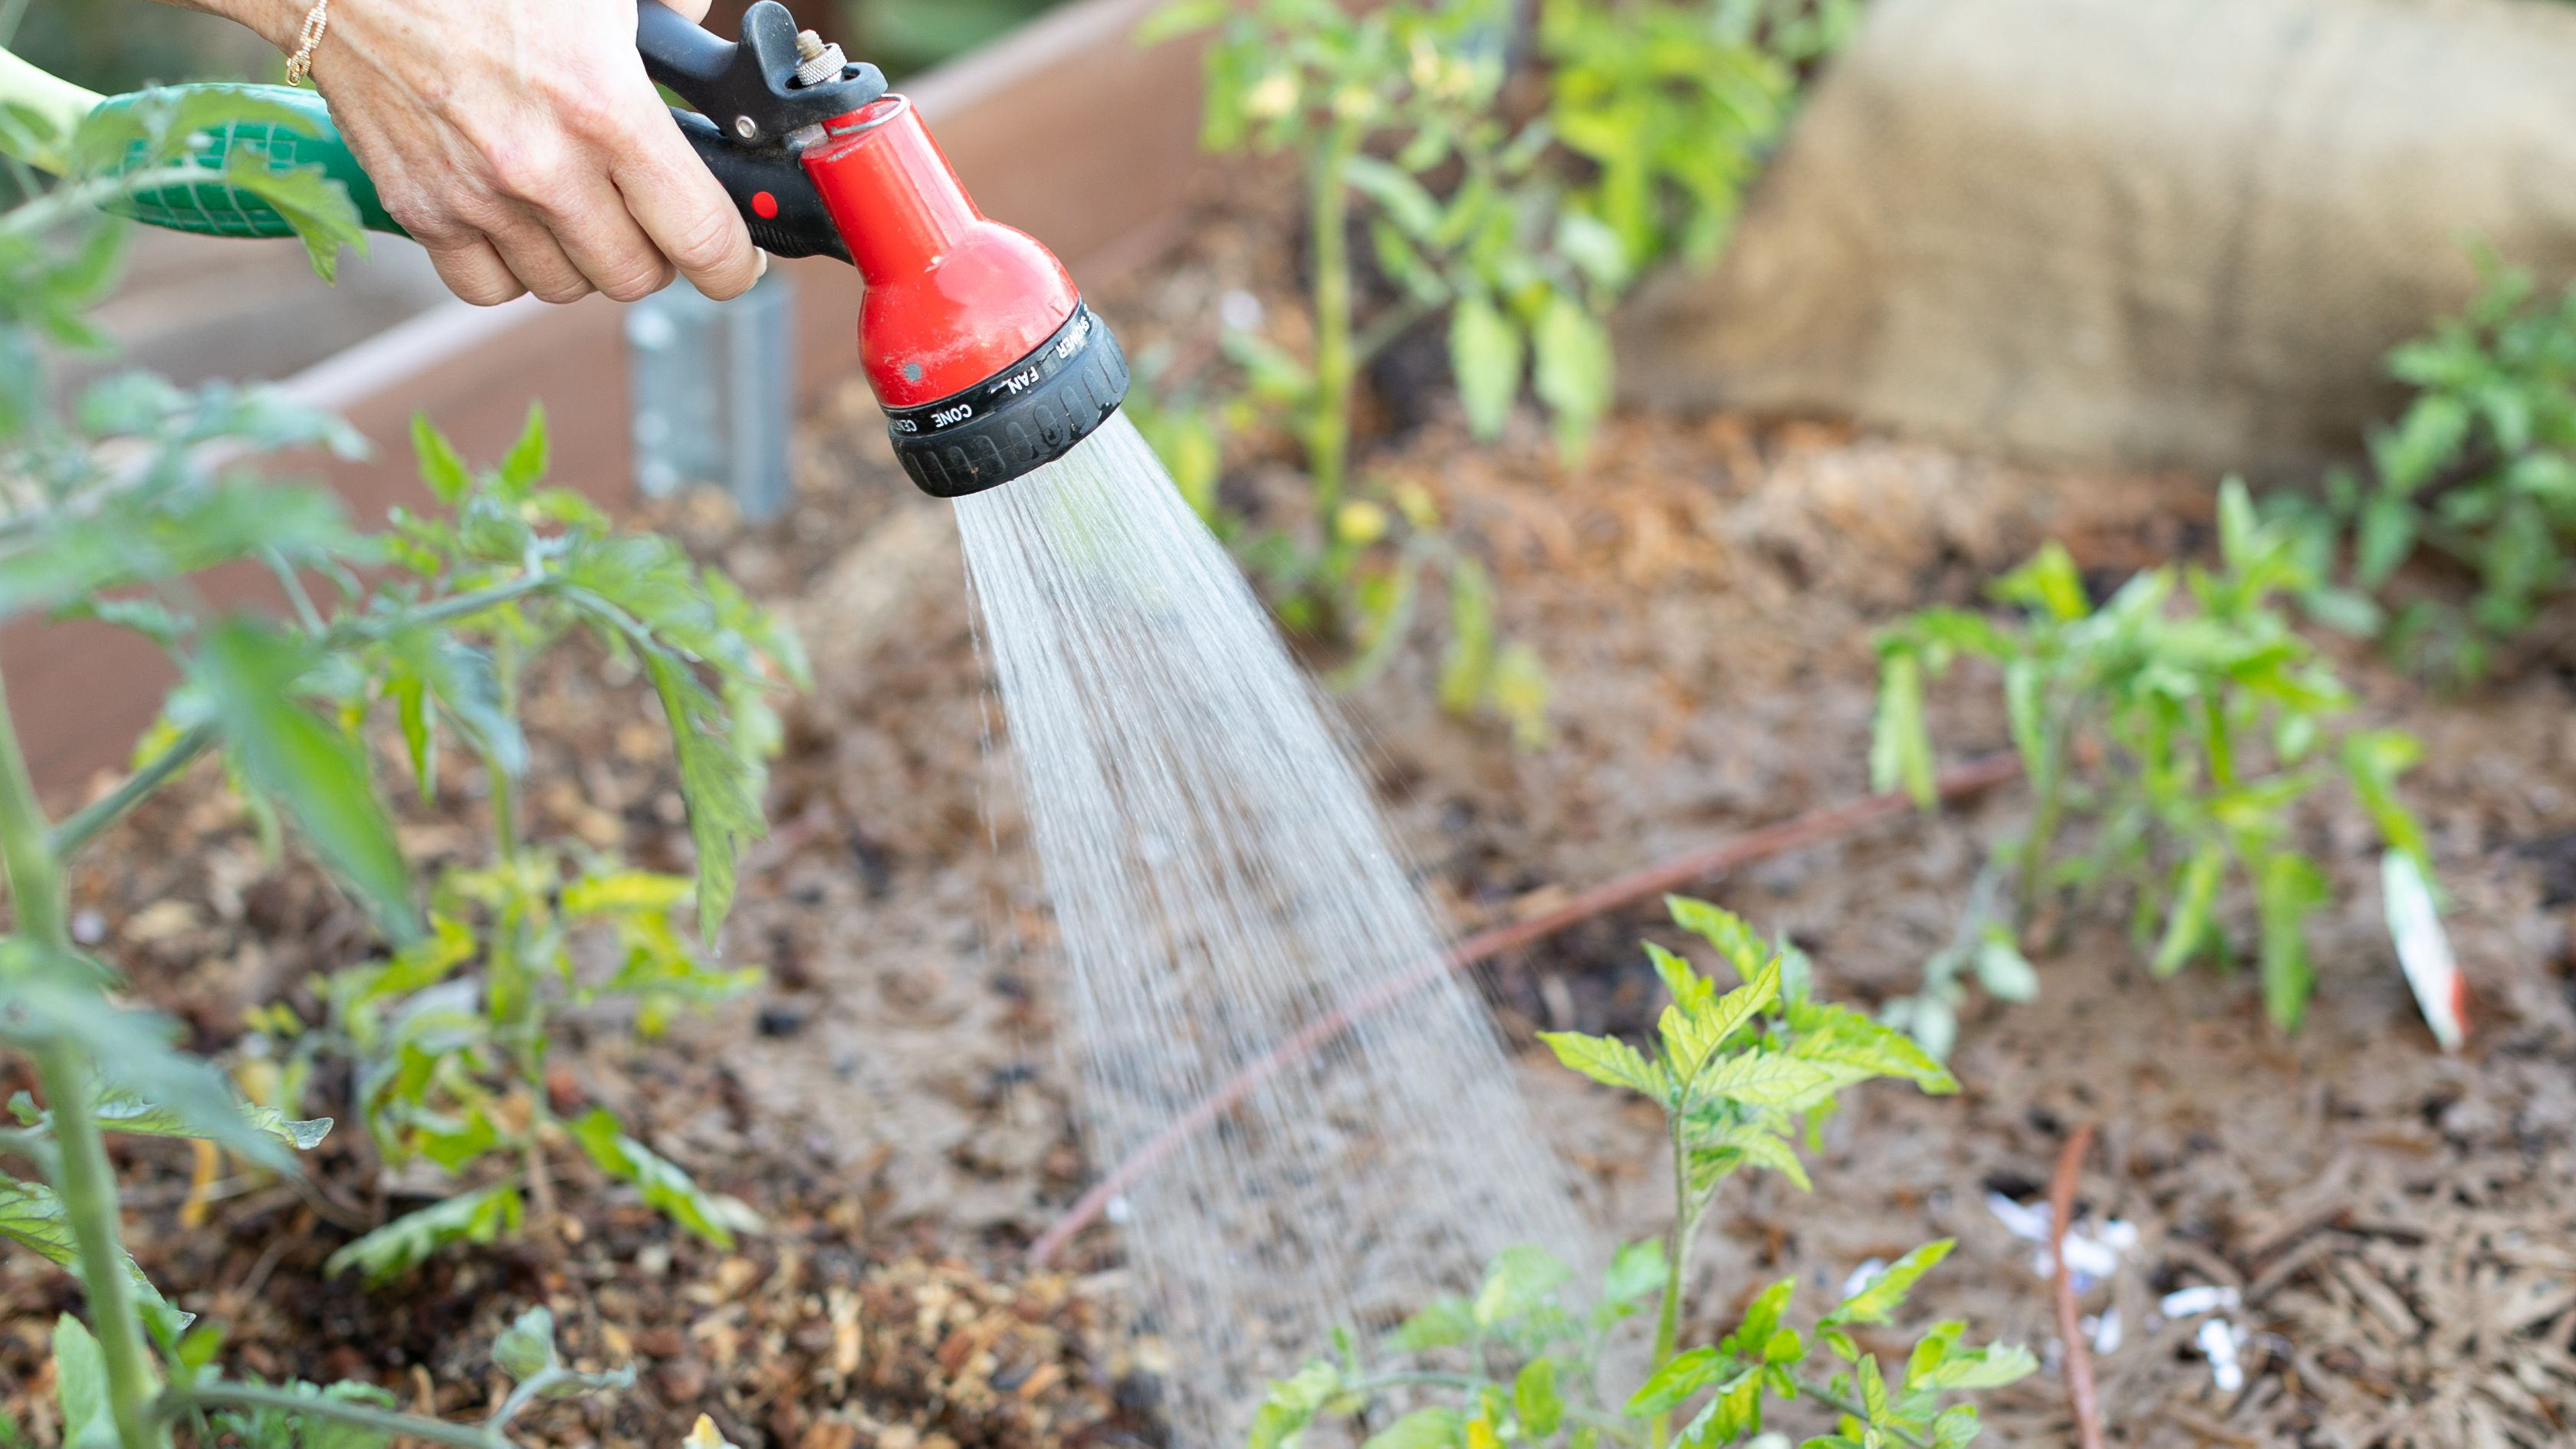 When Is the Best Time to Water Plants